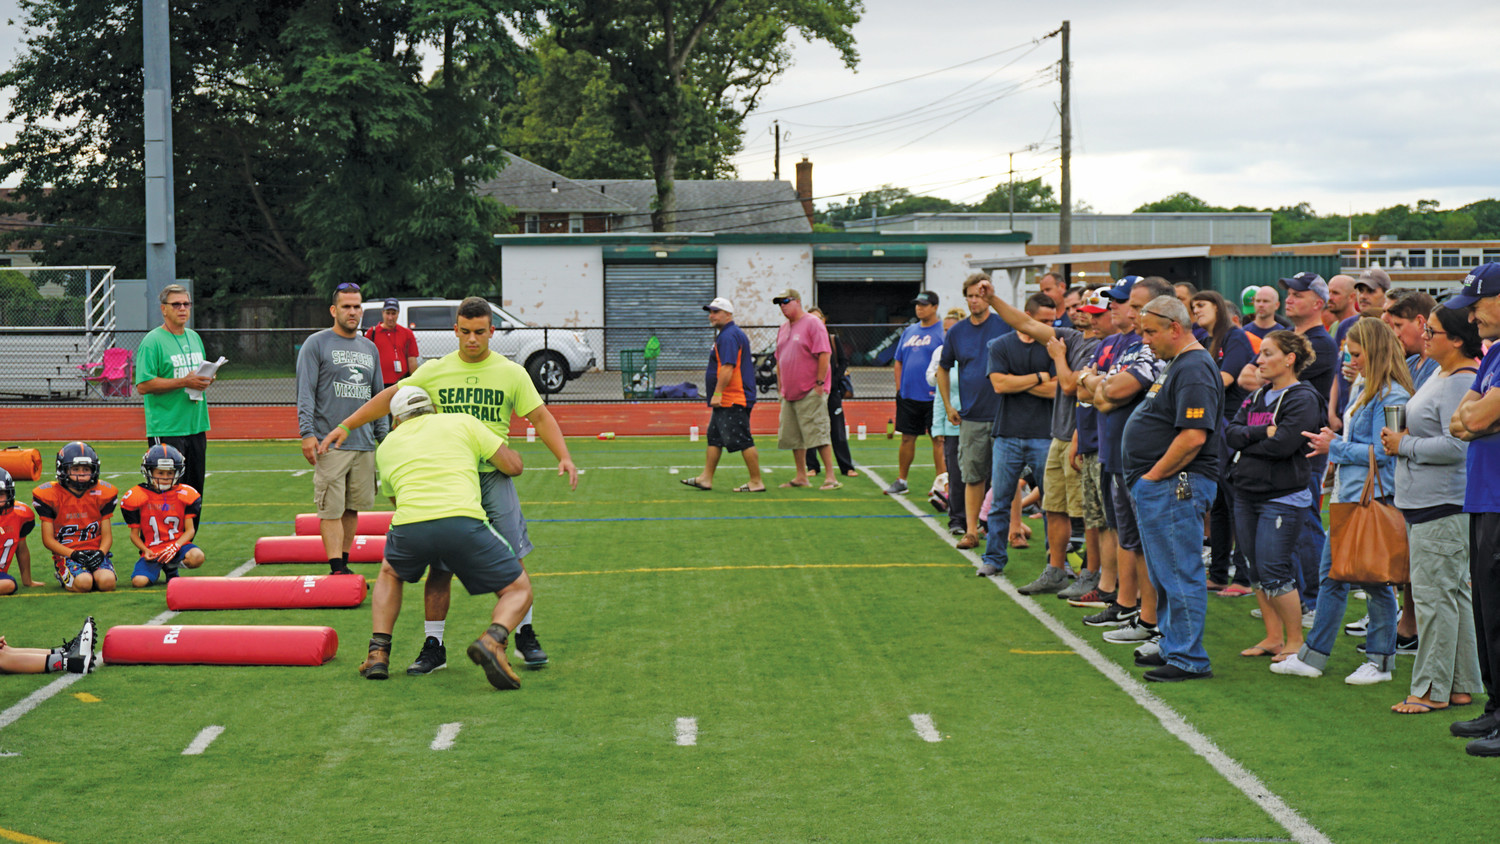 Long Island Broncos players and their parents watched as two Seaford High School varsity football players demonstrated proper tackling.